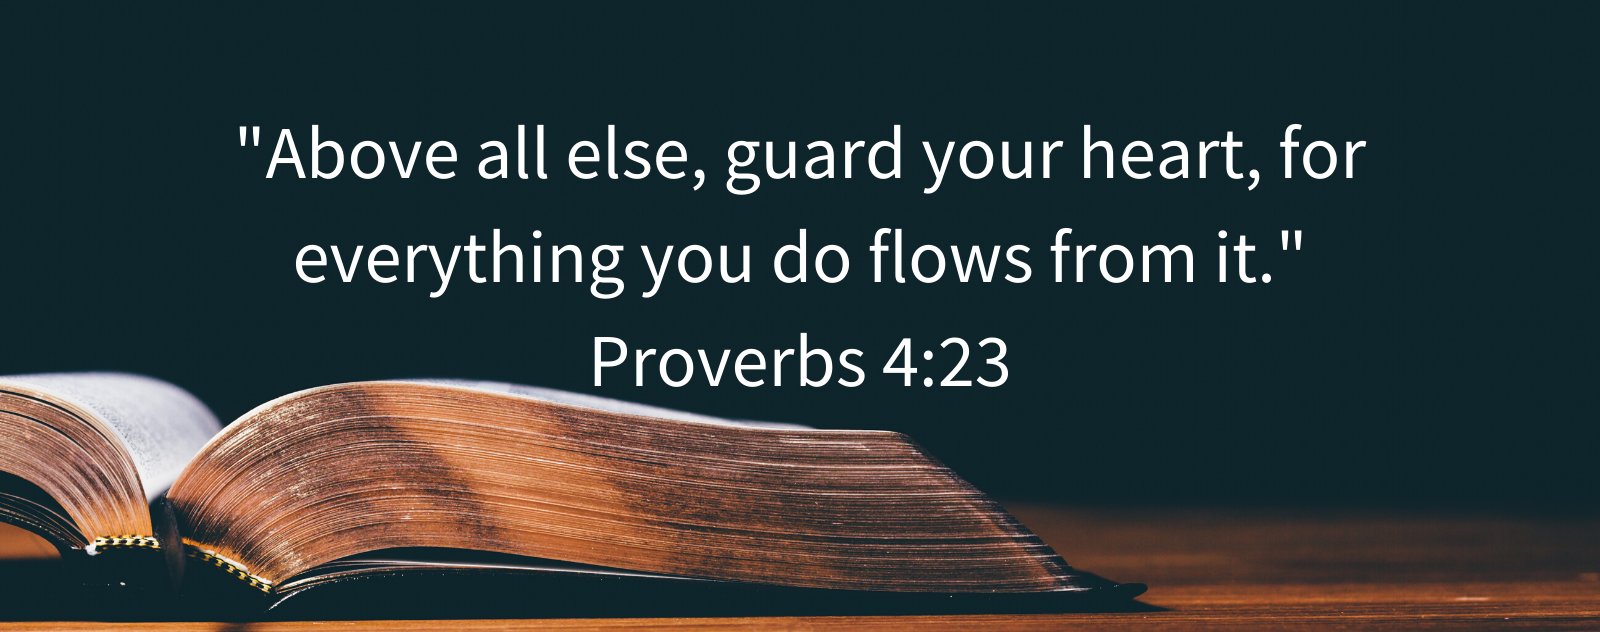 """Above all else, guard your heart, for everything you do flows from it."" Proverbs 4:23"